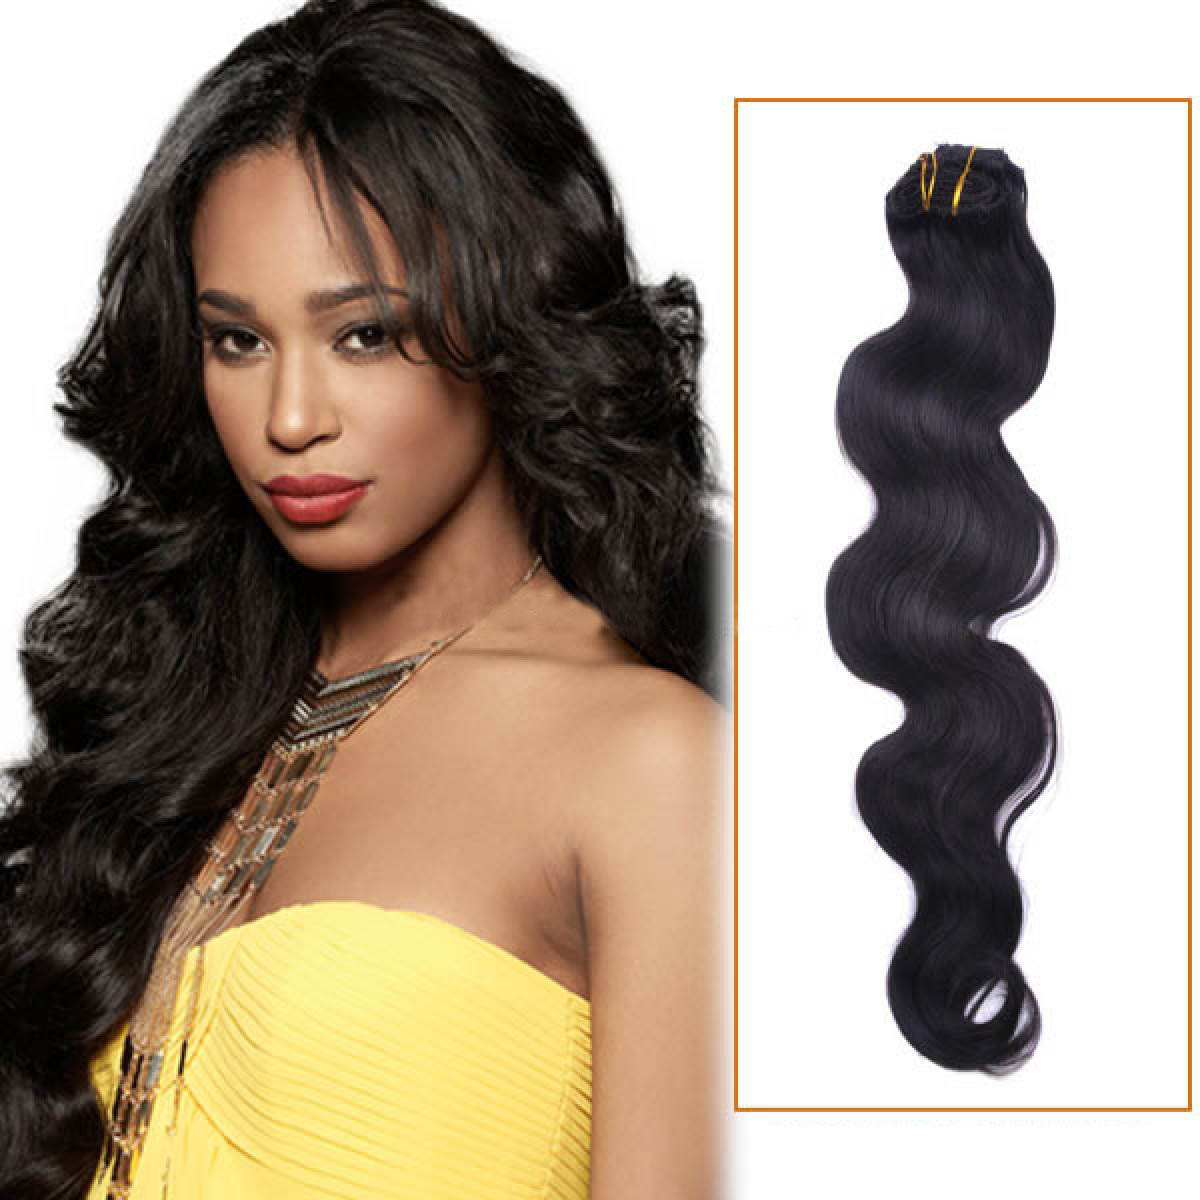 Inch 1 jet black body wave brazilian virgin hair wefts 22 inch 1 jet black body wave brazilian virgin hair wefts pmusecretfo Image collections